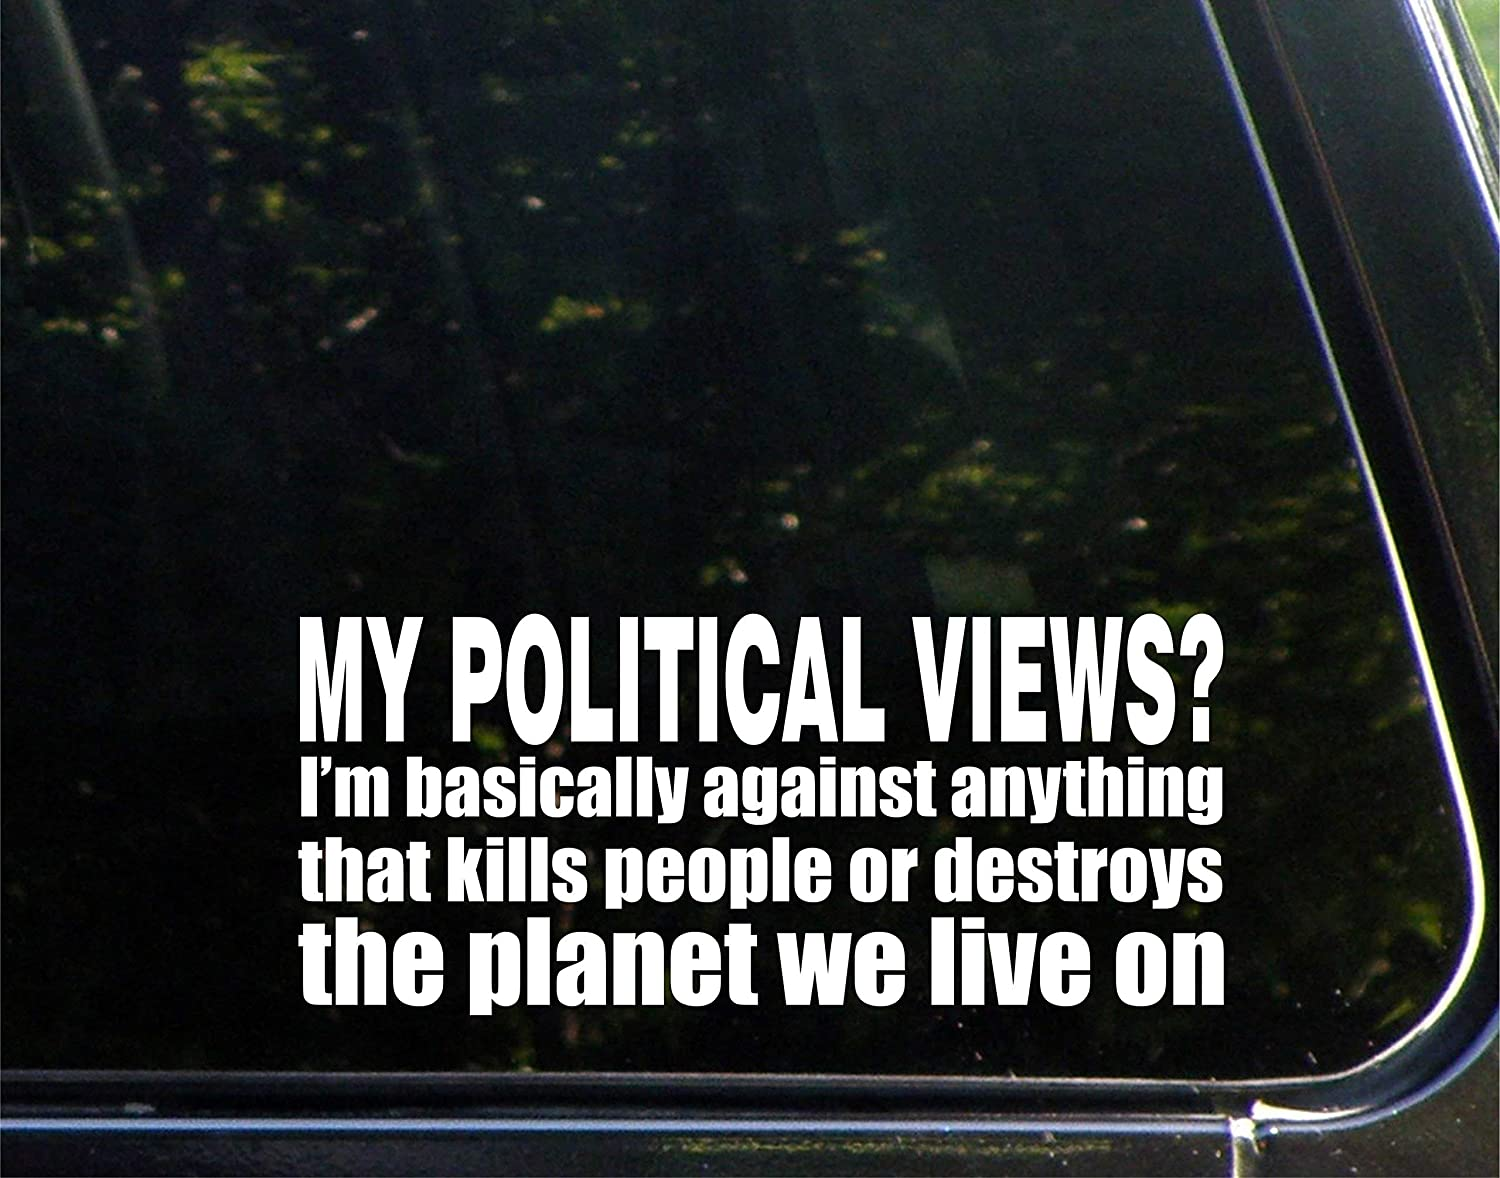 "My Political Views? I'm Basically Against Anything The Kills People Or Destroys The Planet We Live On (8-1/2"" x 4"") Die Cut Decal Bumper Sticker For Windows, Cars, Trucks, Laptops, Etc"